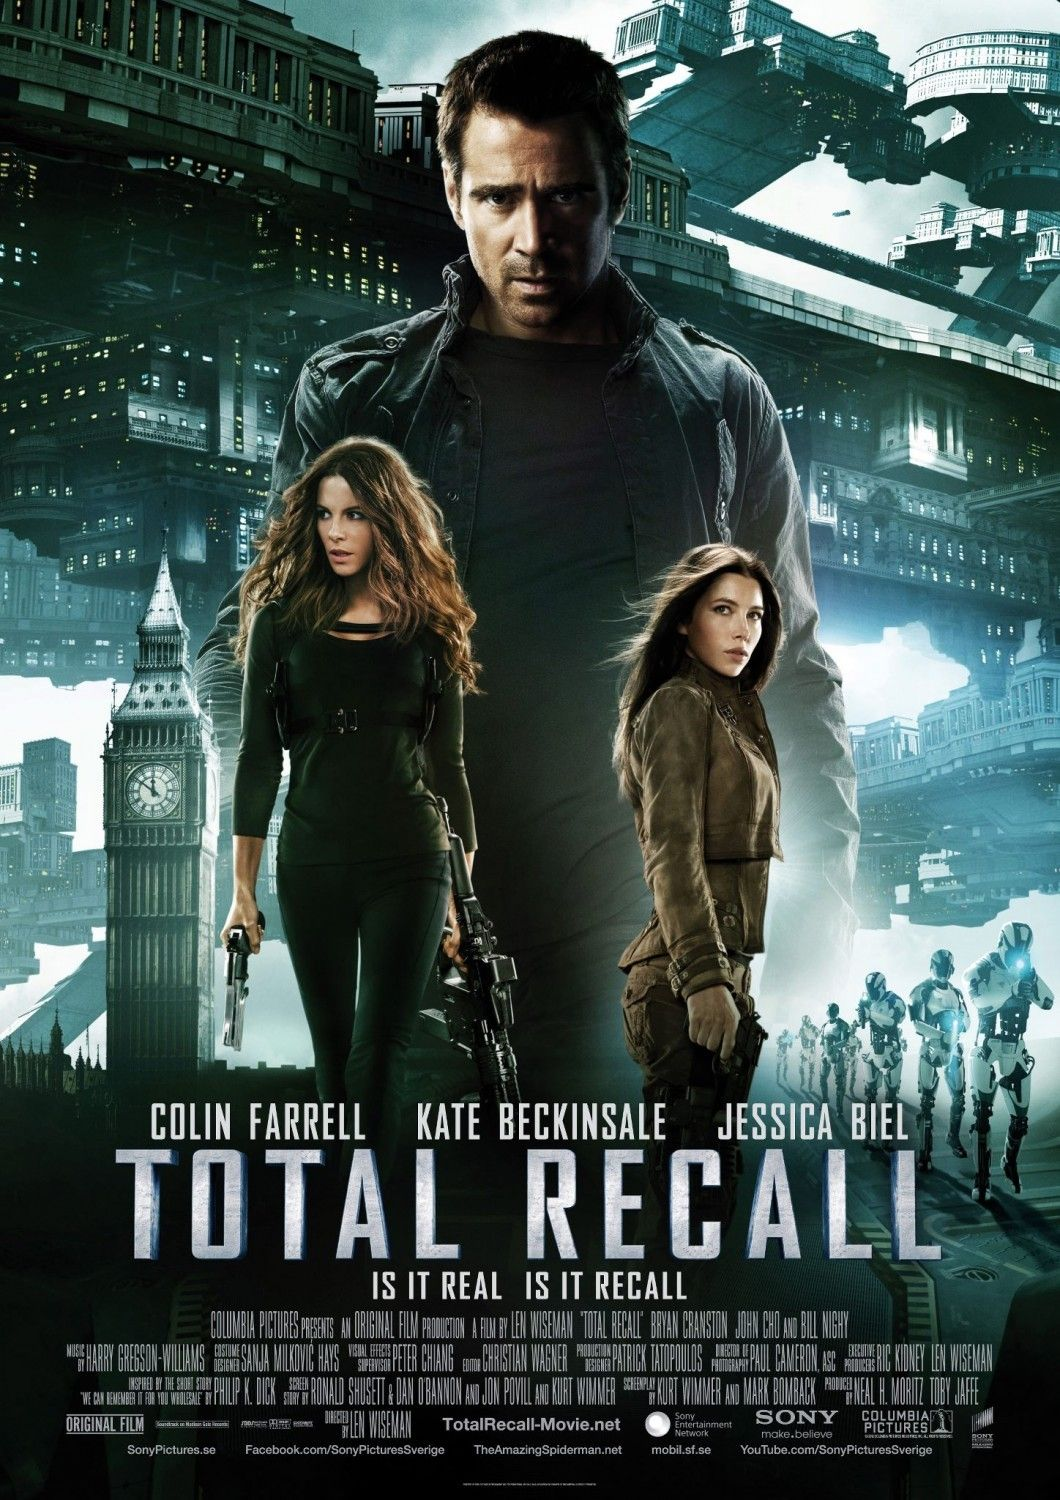 Total Recall 2012 Movie Posters 2010s